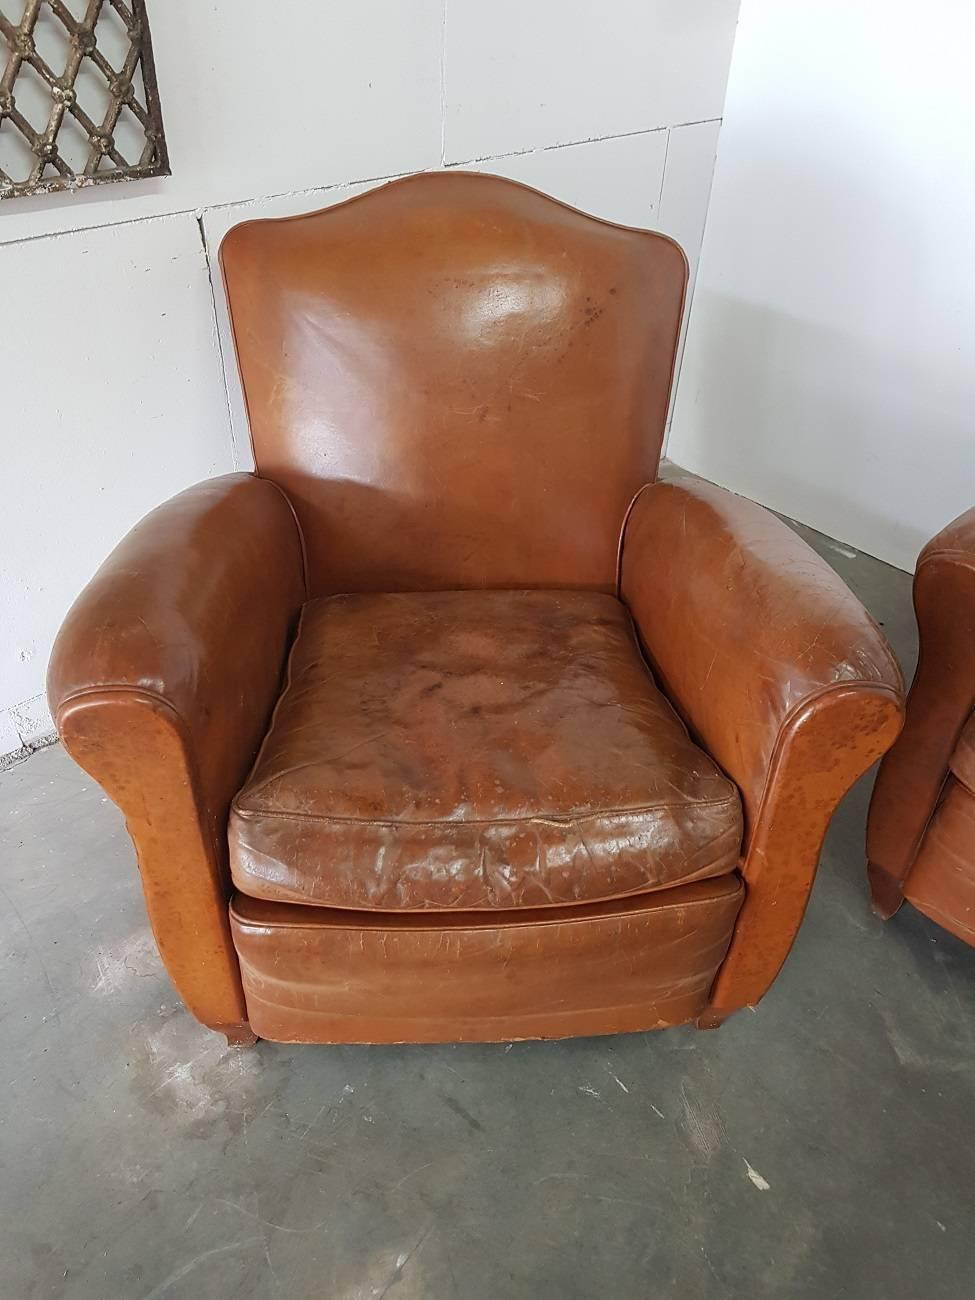 Vintage French Leather Club Chairs With Matching Sofa From The 1950s 2